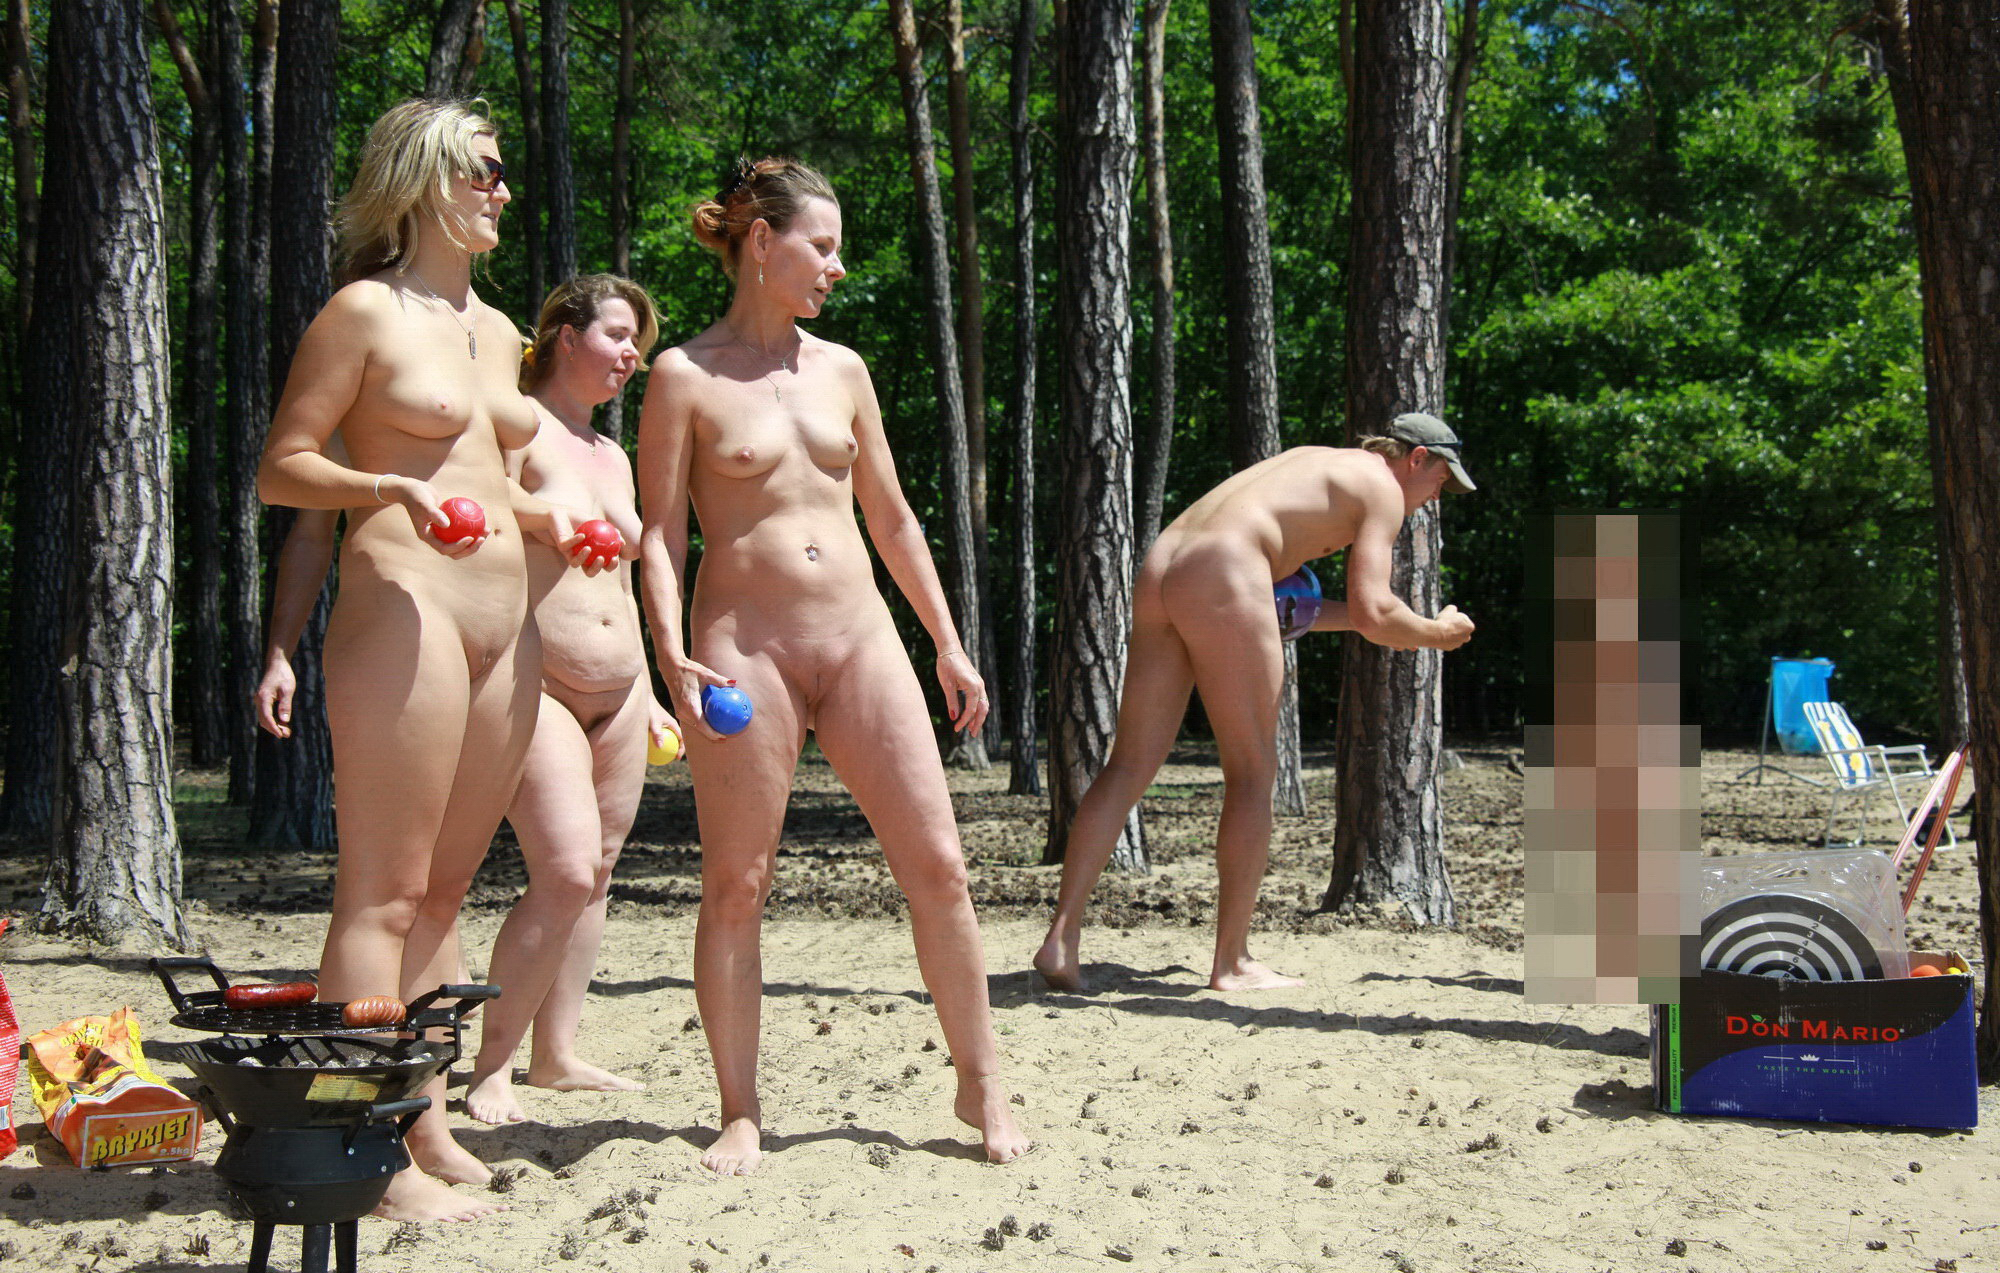 Nudists Games | Photo Sexy Girls: http://photosexygirls.com/nudists/nudists-games.html